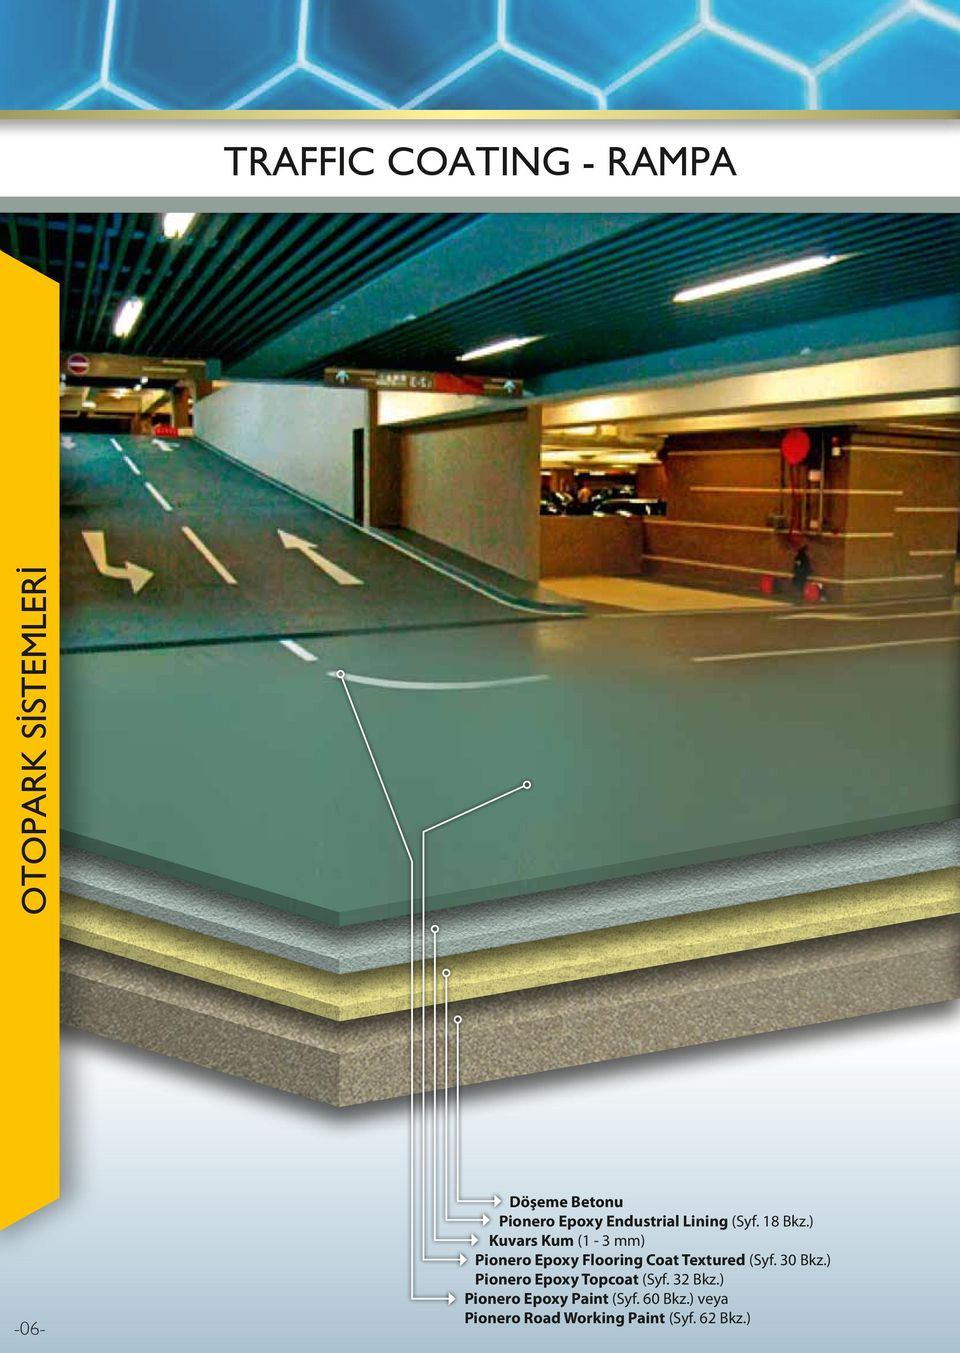 ) Kuvars Kum (1-3 mm) Pionero Epoxy Flooring Coat Textured (Syf. 30 Bkz.